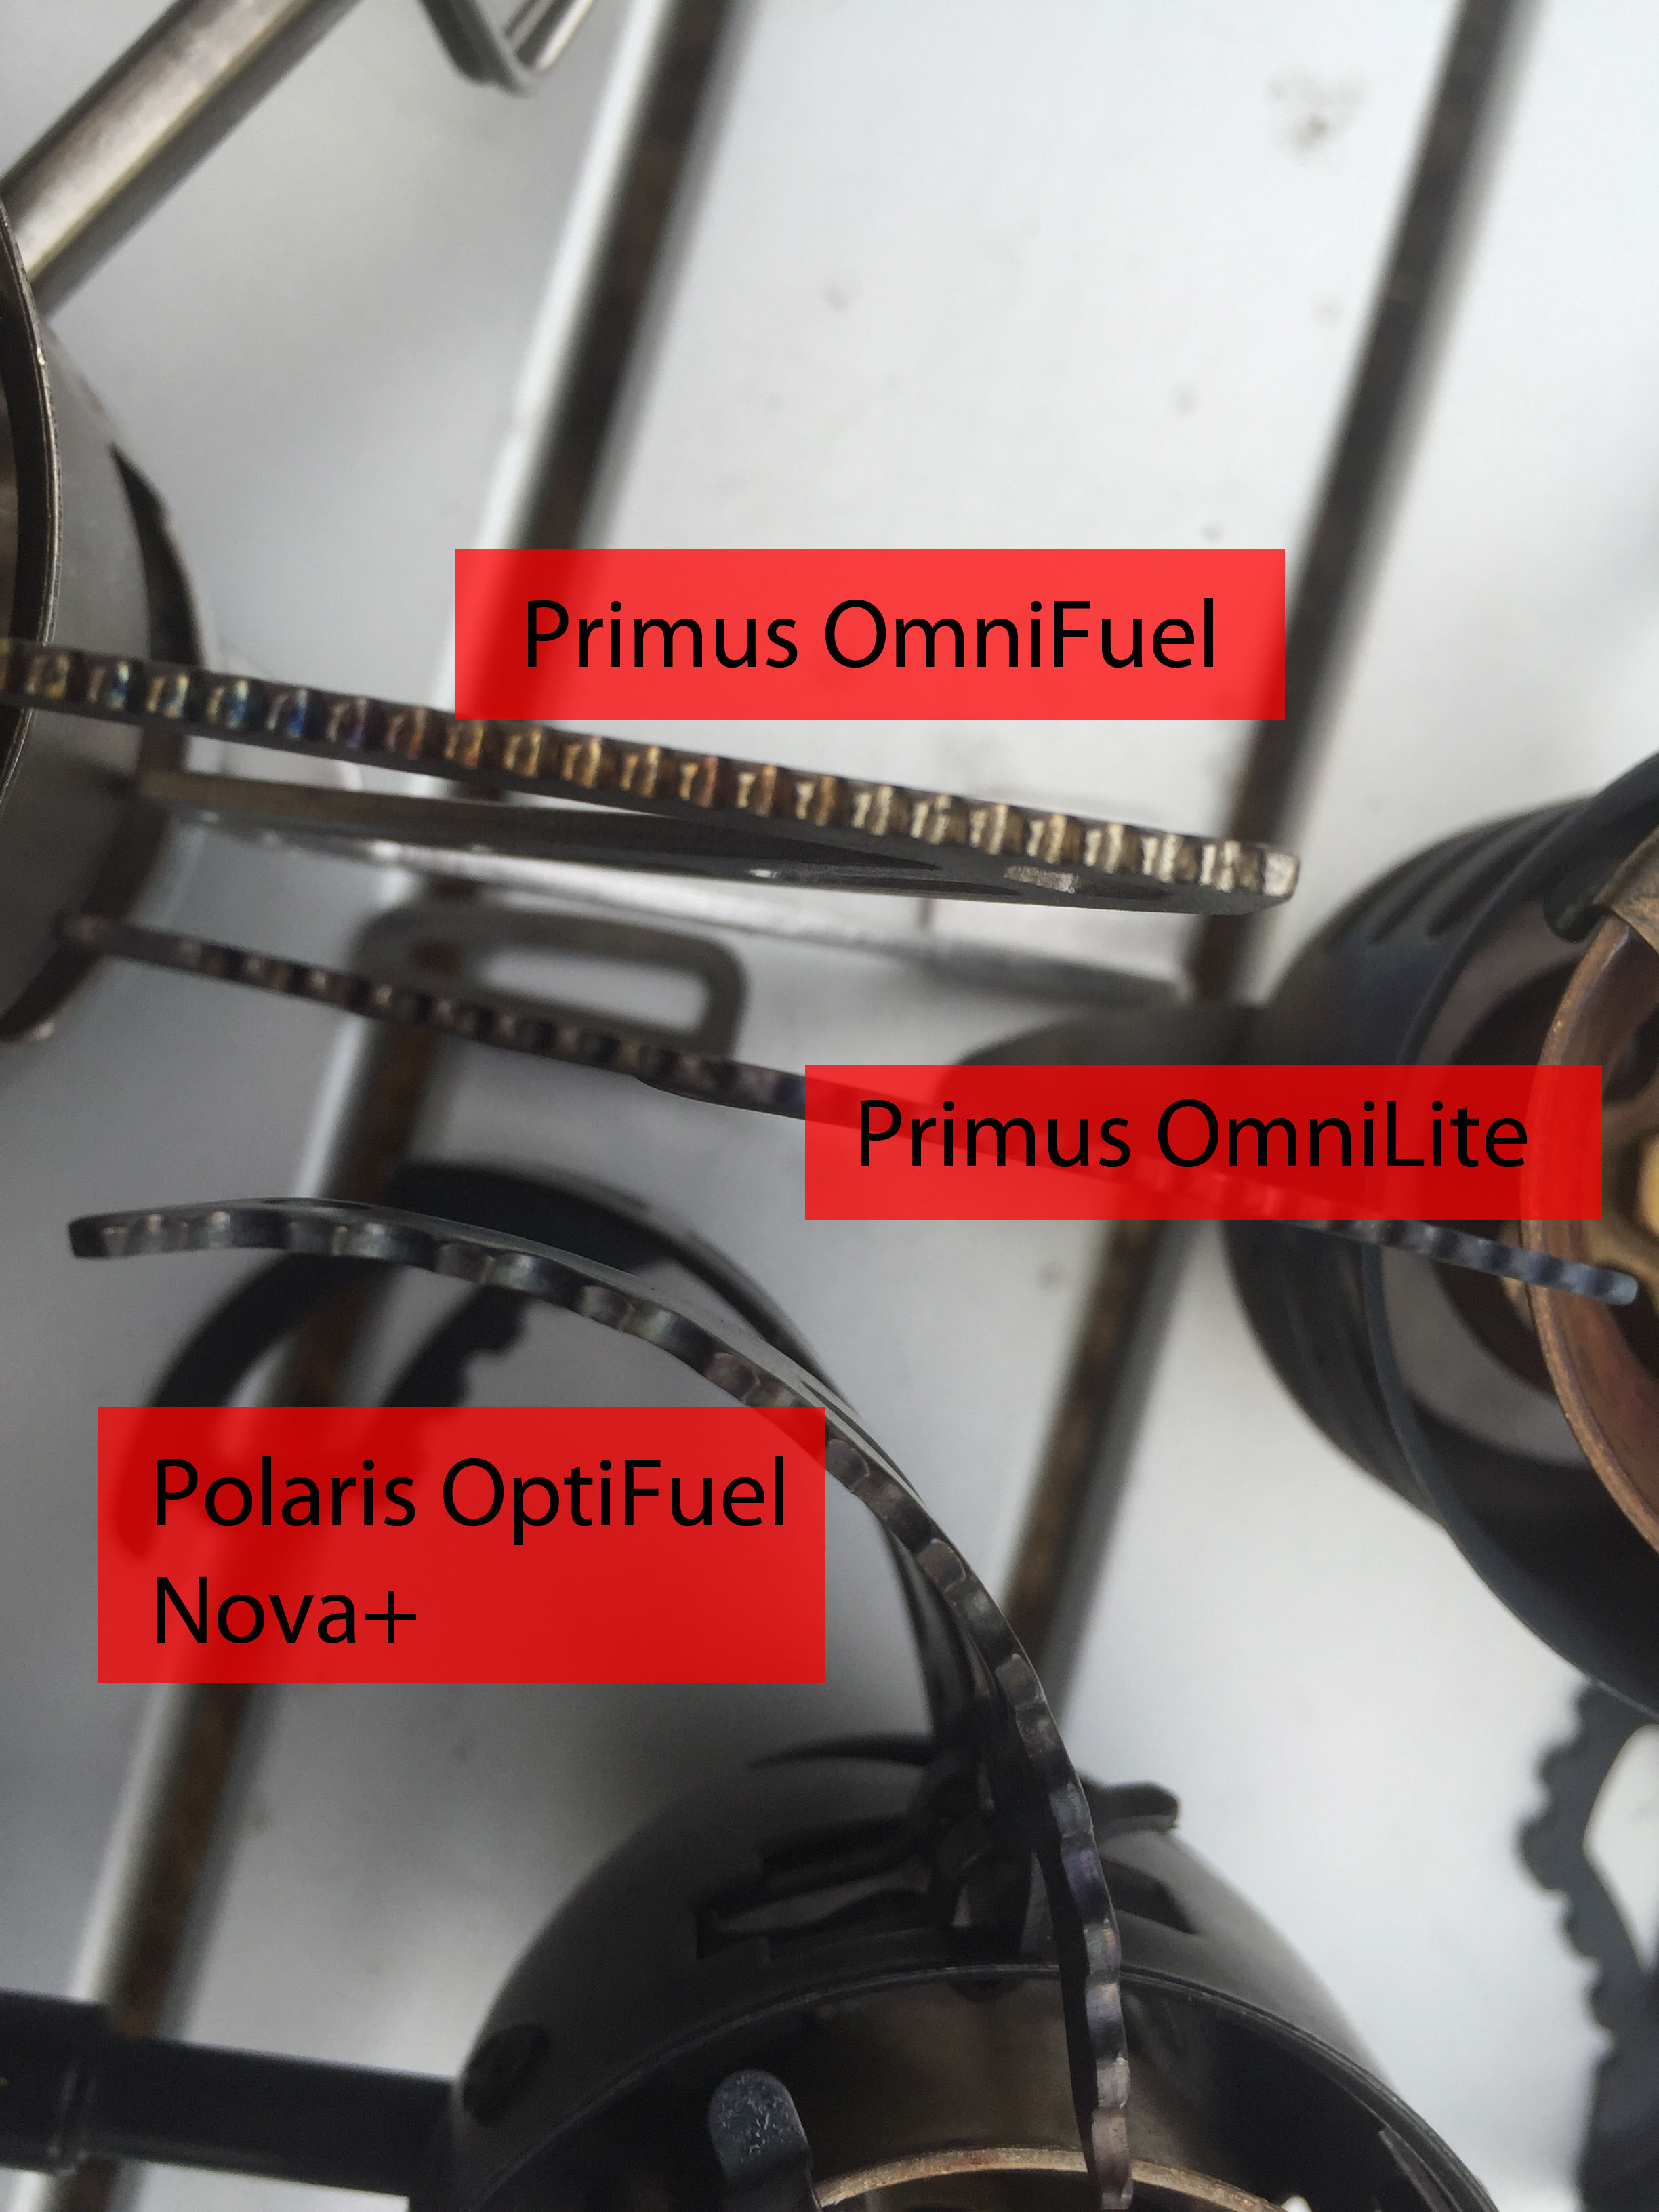 I Have Now Used The OmniFuel A Fair Bit And Heavier Omnifuel Is Definitely More Stable Easier To Handle If For No Other Reason Than Fact